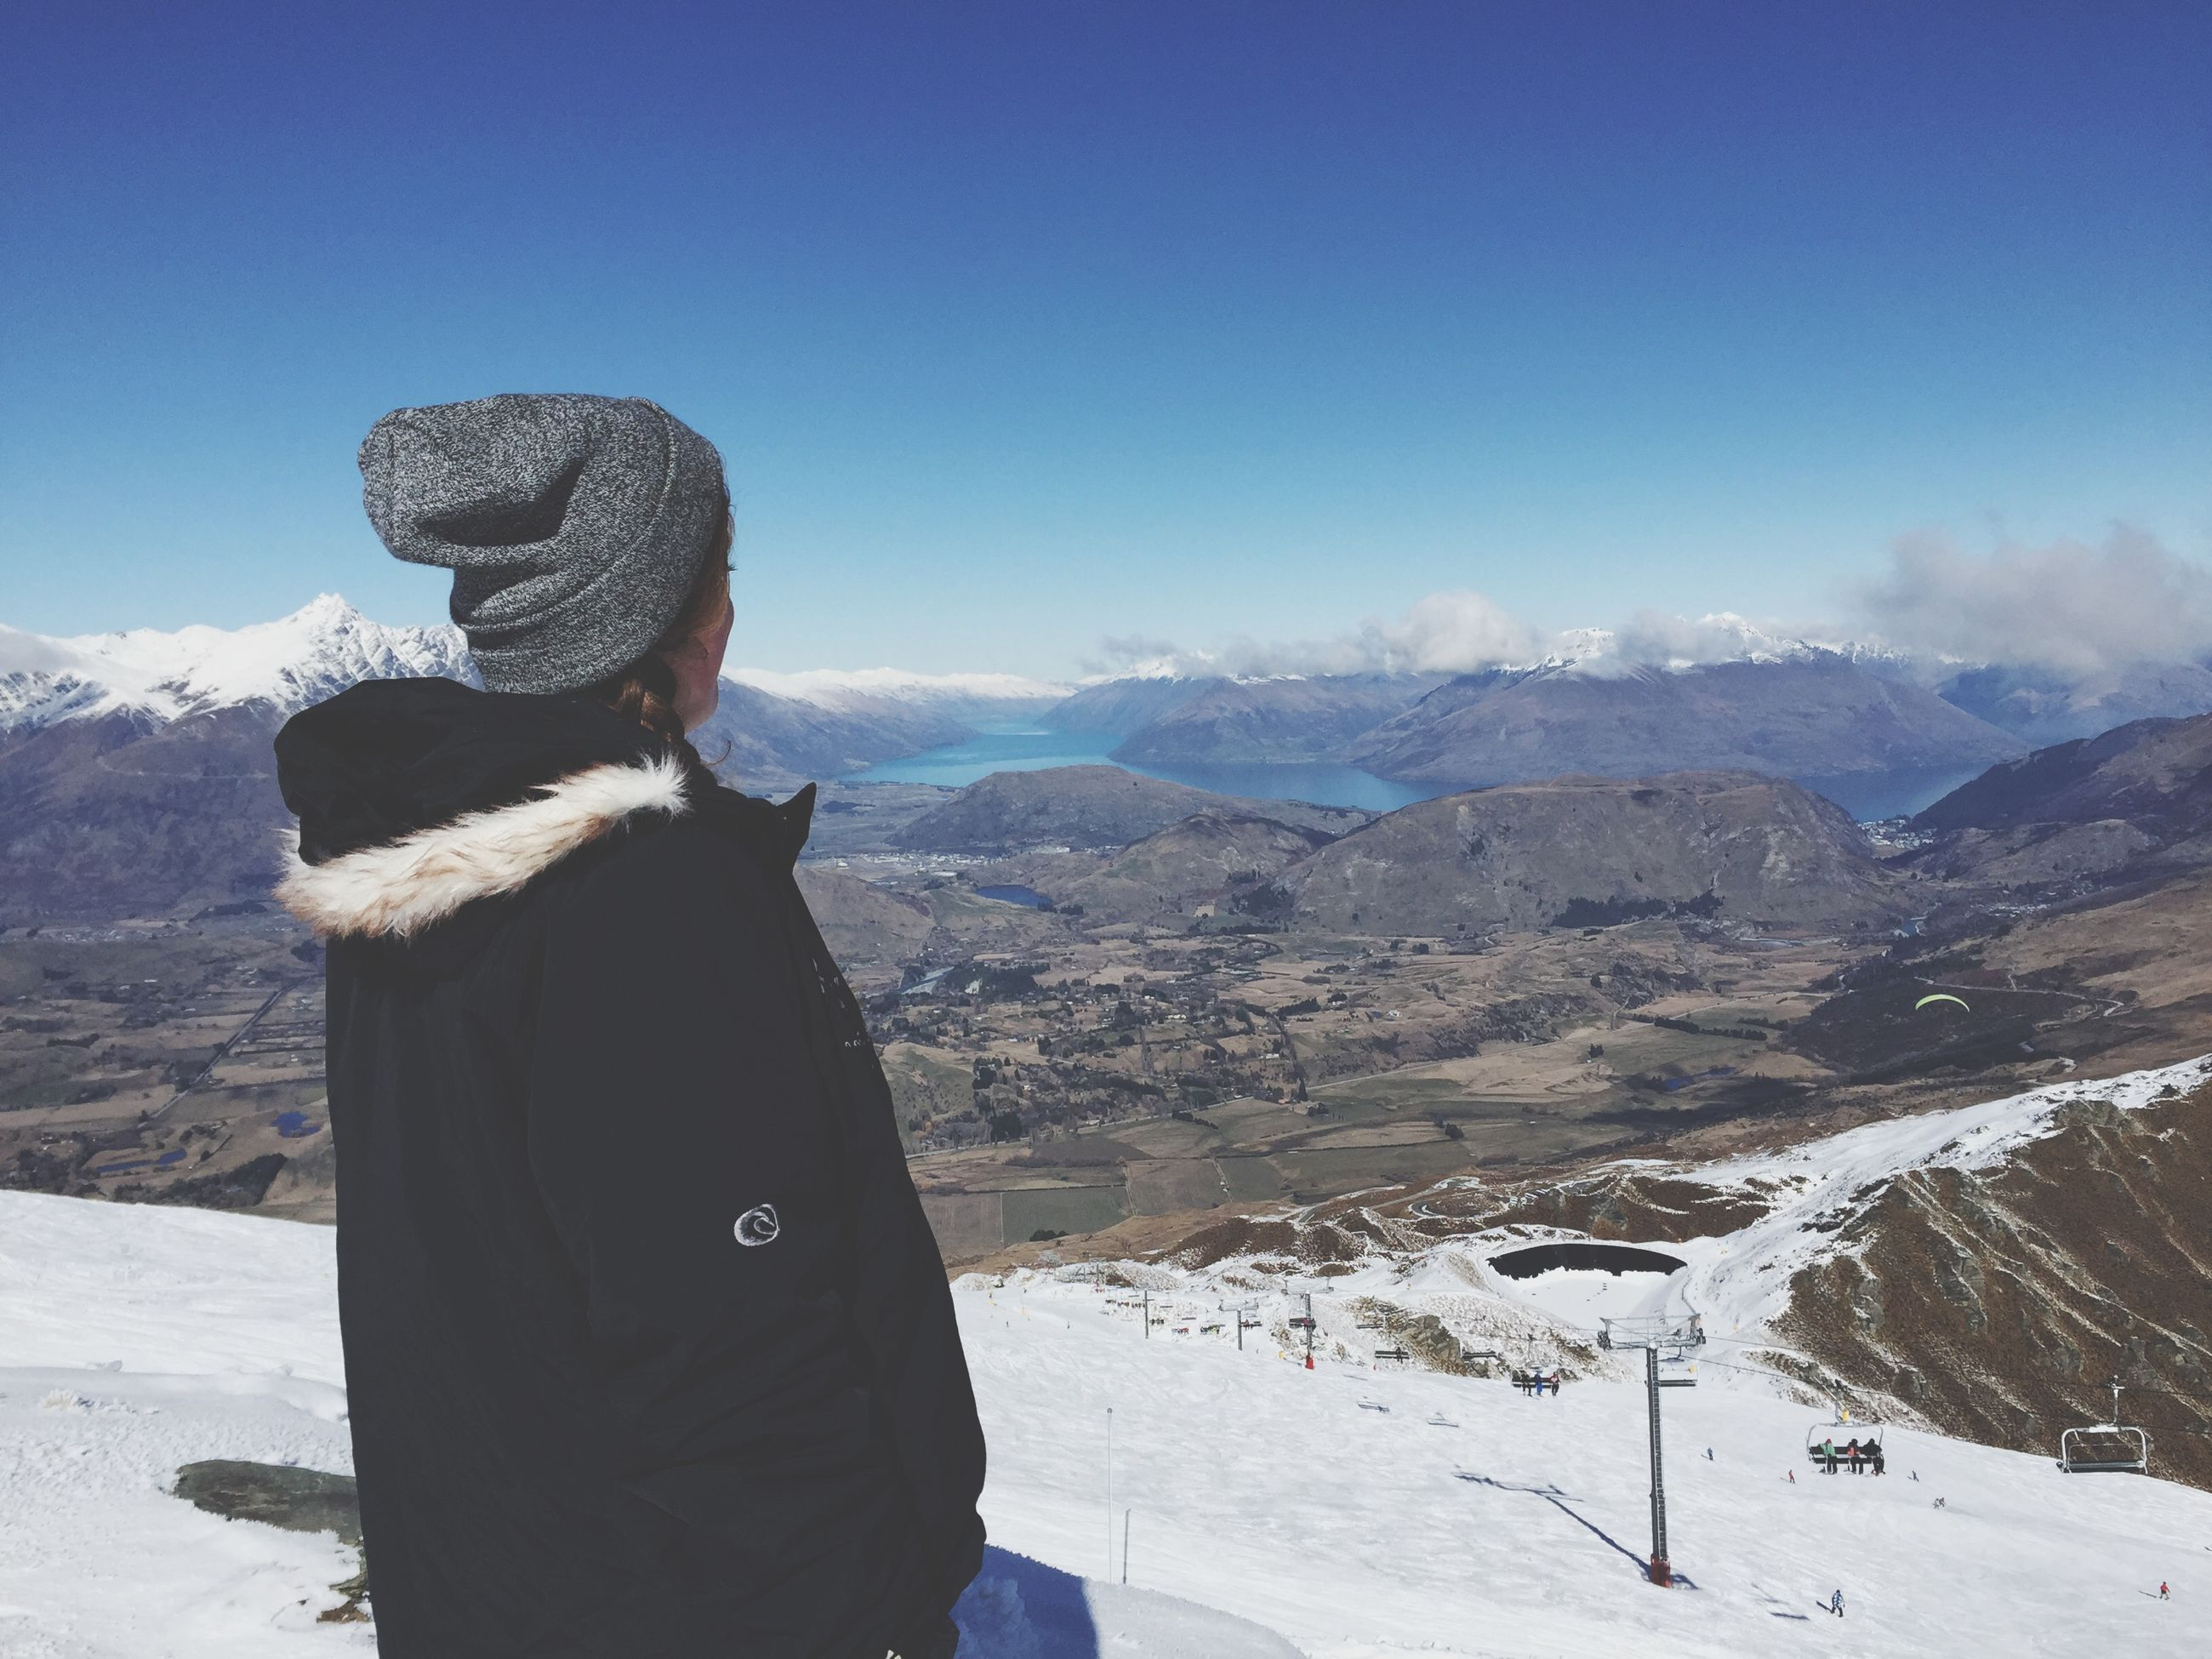 winter, snow, mountain, cold temperature, lifestyles, leisure activity, landscape, tranquil scene, standing, rear view, warm clothing, scenics, tranquility, sky, season, nature, mountain range, beauty in nature